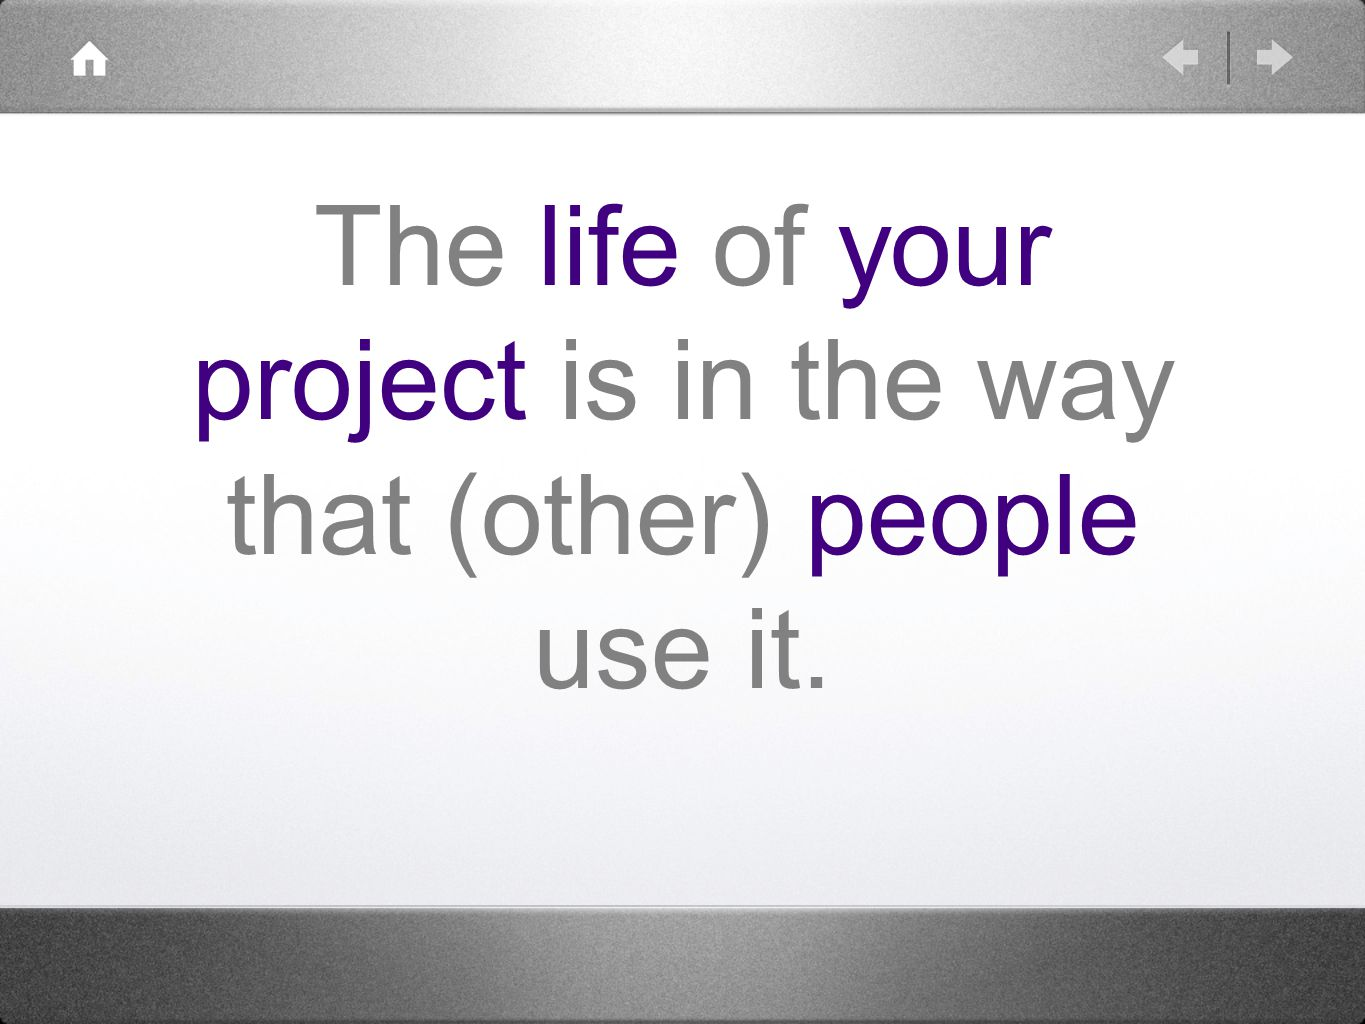 The life of your project is in the way that (other) people use it.